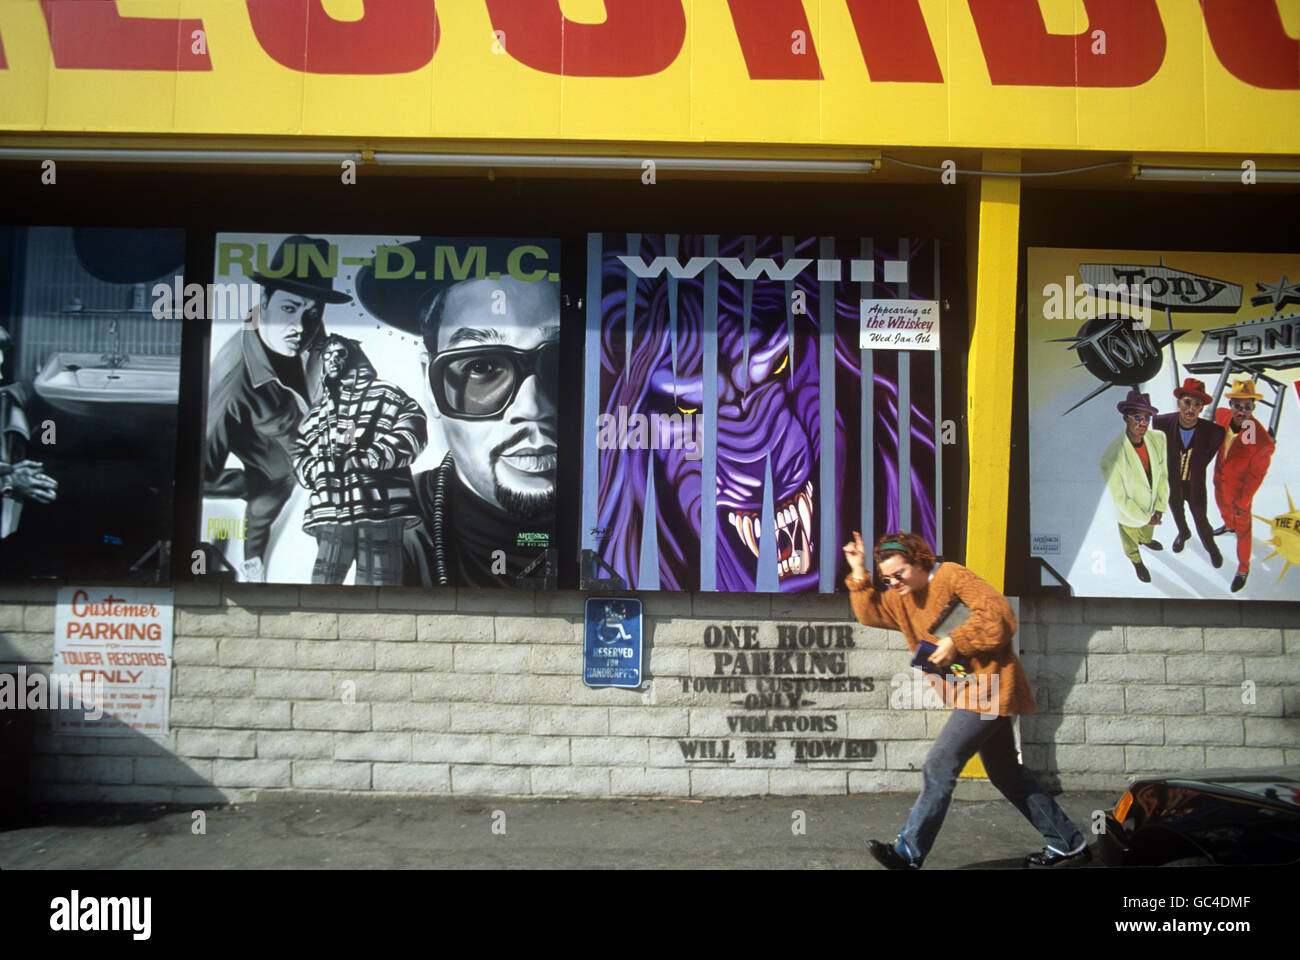 Tower Records on the Sunset Strip circa 1991 - Stock Image